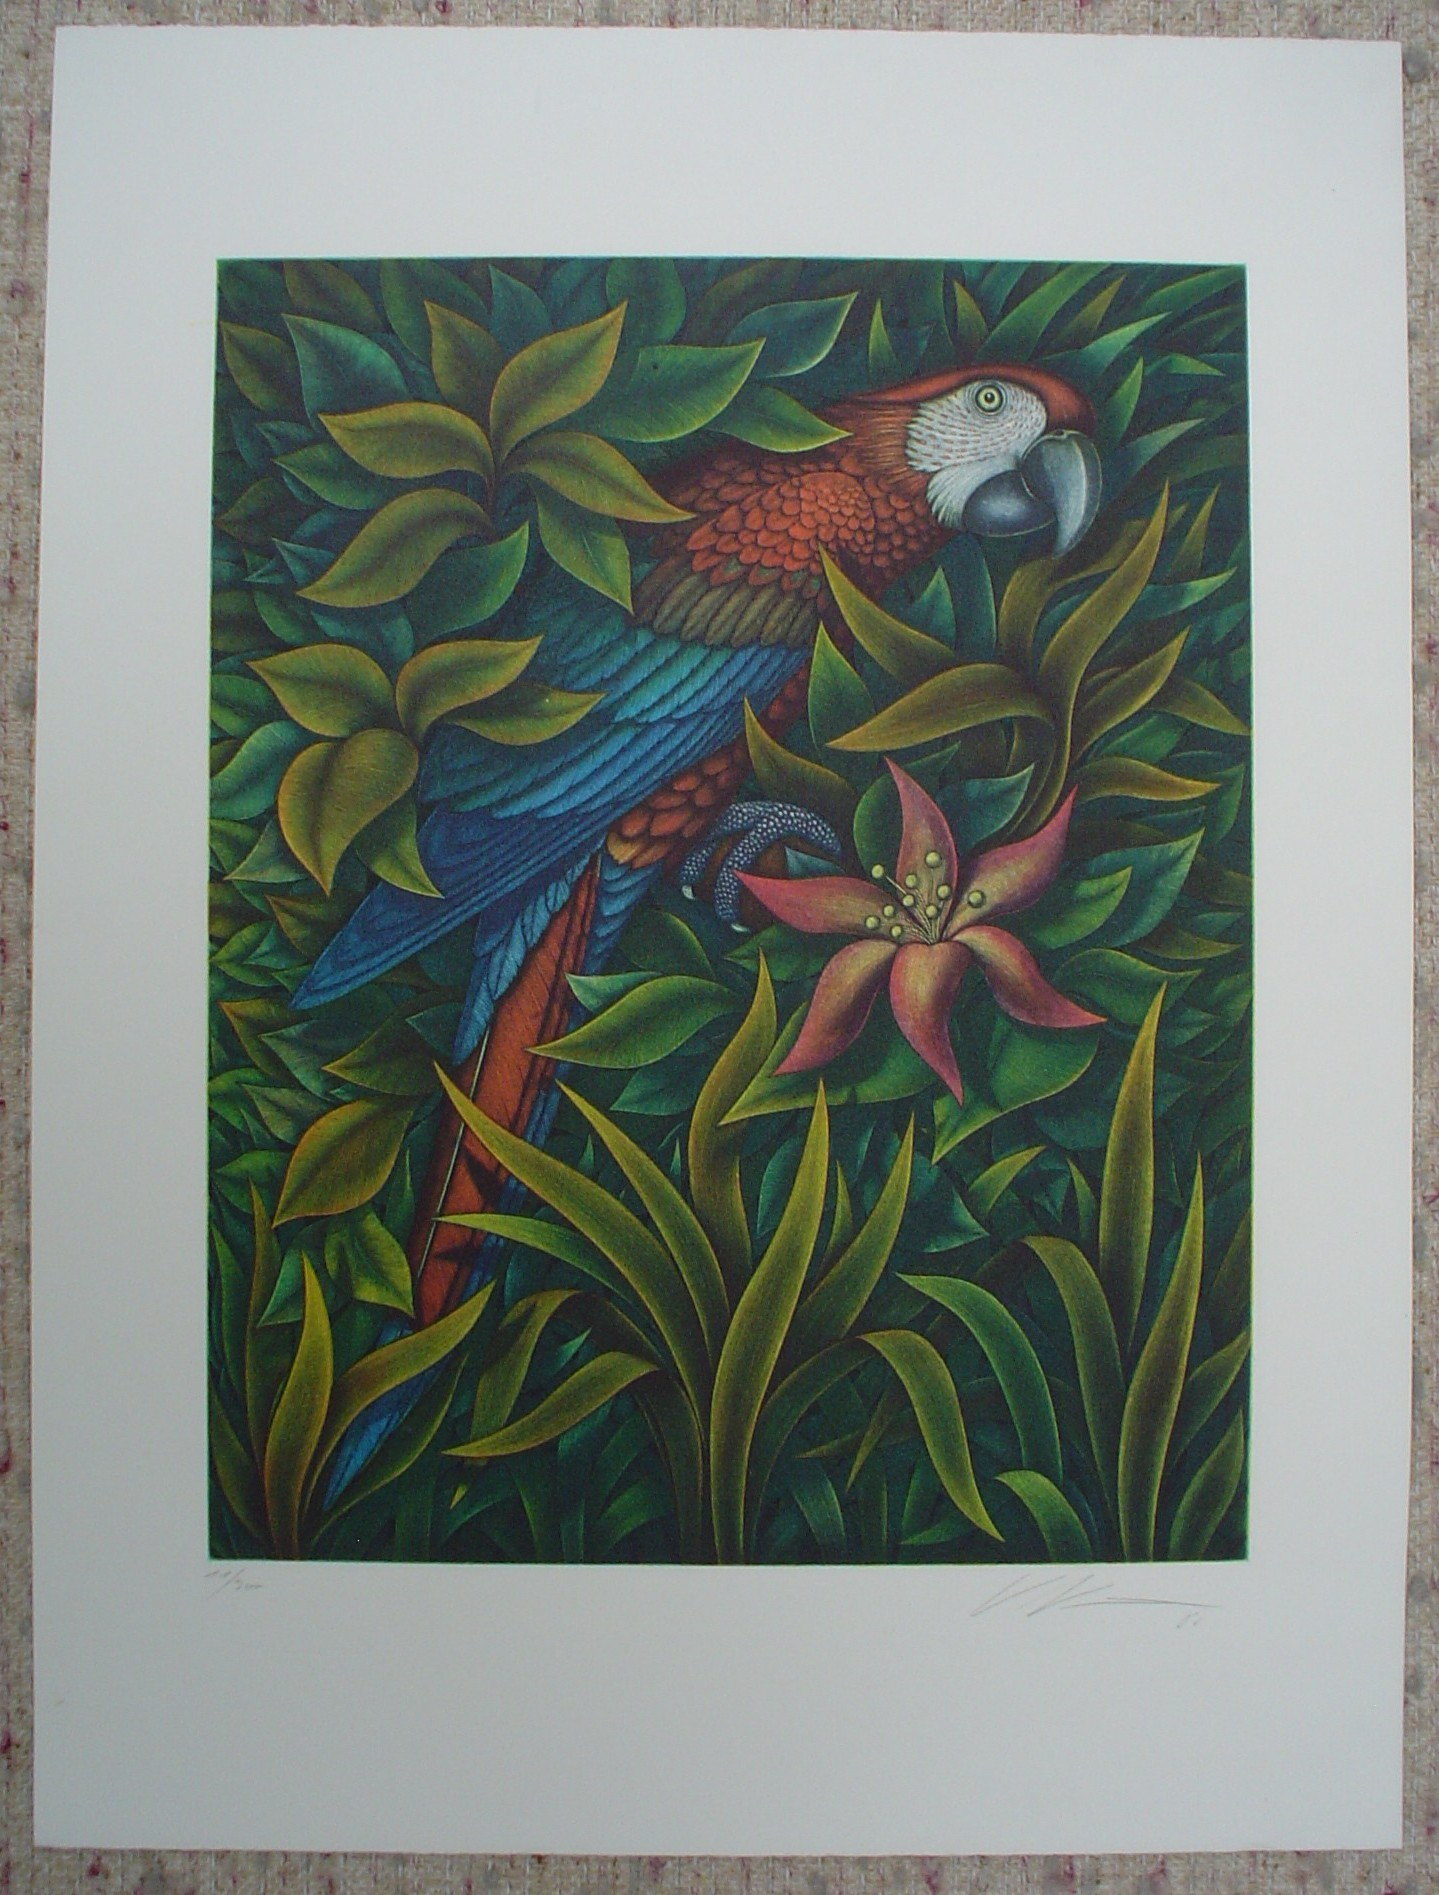 Macaw by Volker Kuehn, shown with full margins - original hand-coloured etching - numbered 11/300, signed and dated in pencil by artist